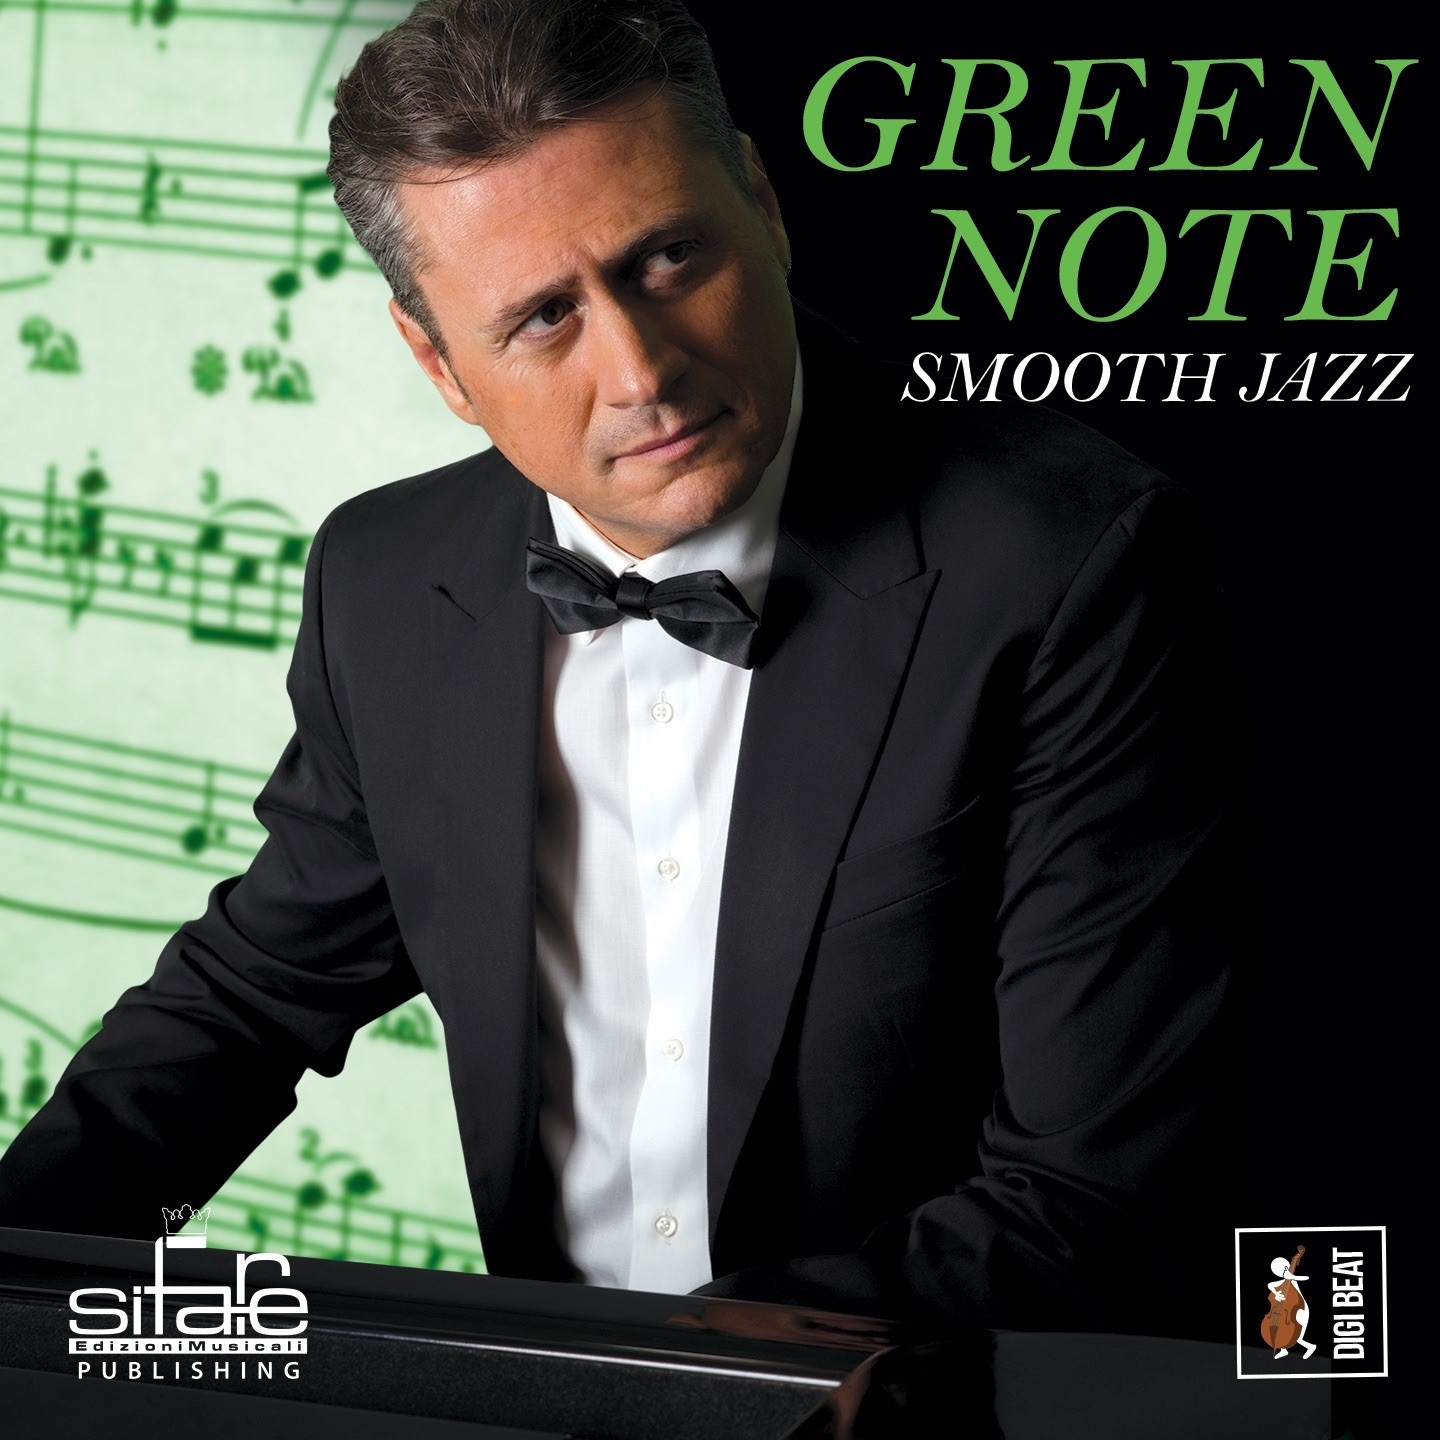 Green Note (Smooth Jazz)